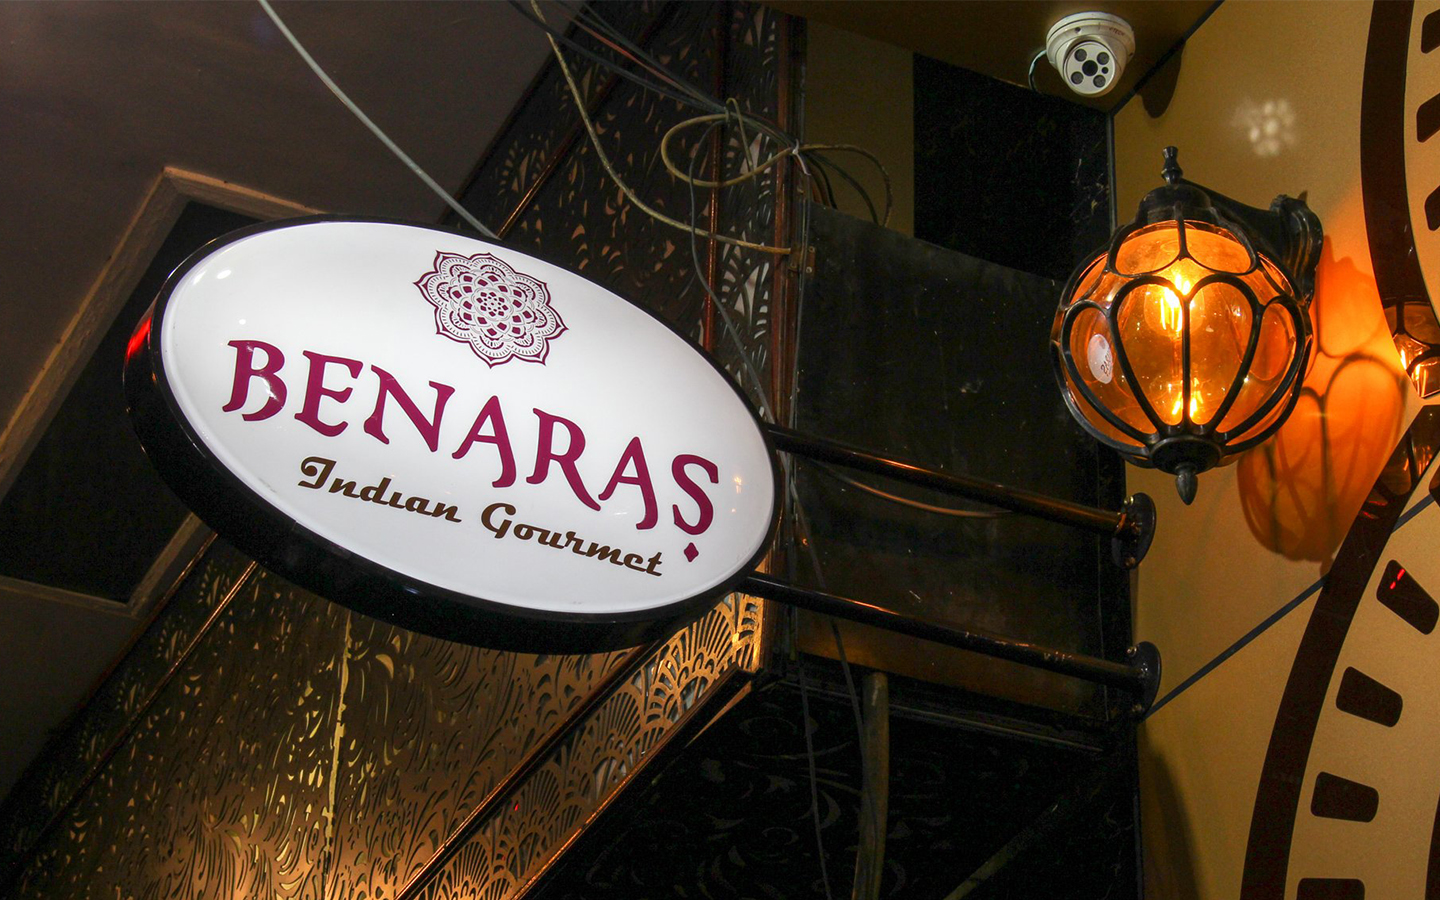 Benaras - Indian cuisine in Ho Chi Minh